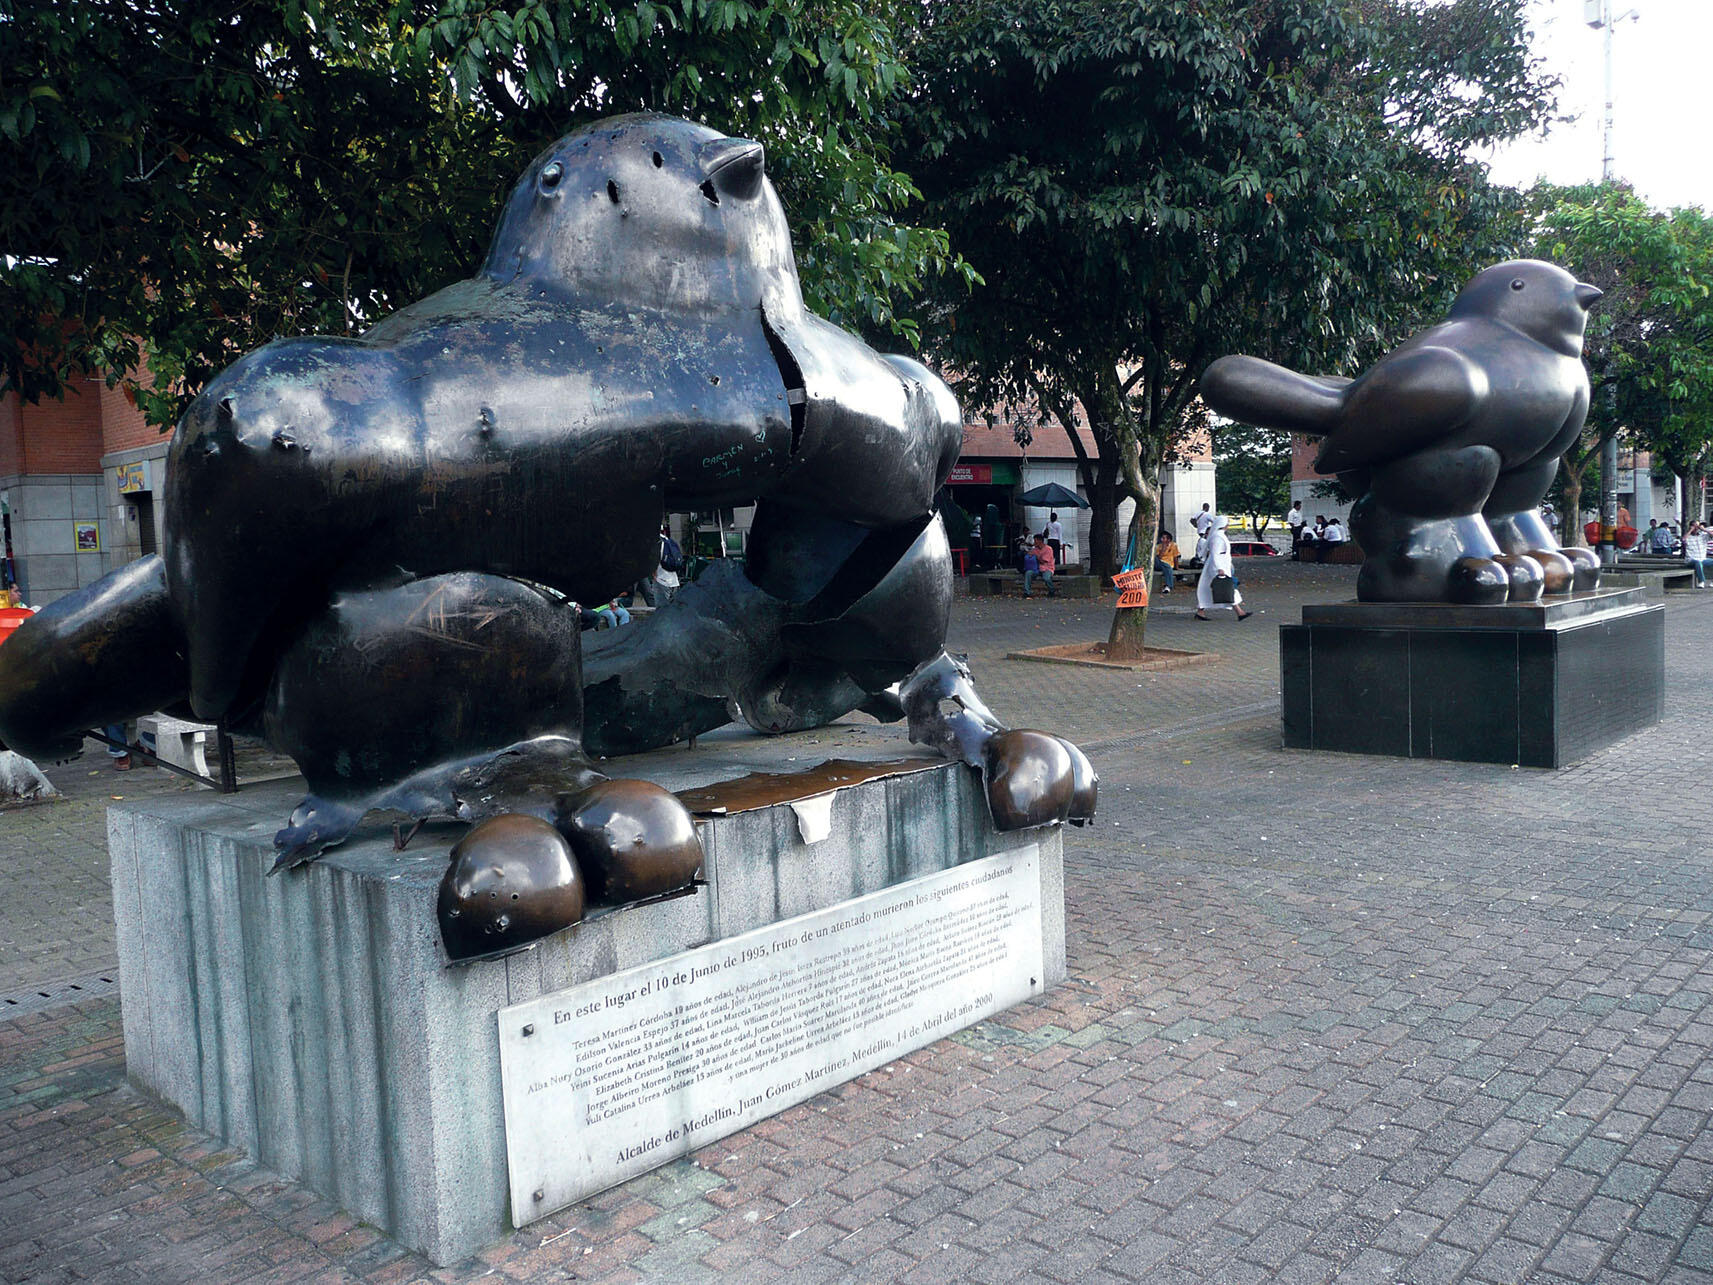 When a bomb damaged the metal statue of a bird on the left, Fernando Botero donated another to Medellín. (Photo by Randal Sheppard.)